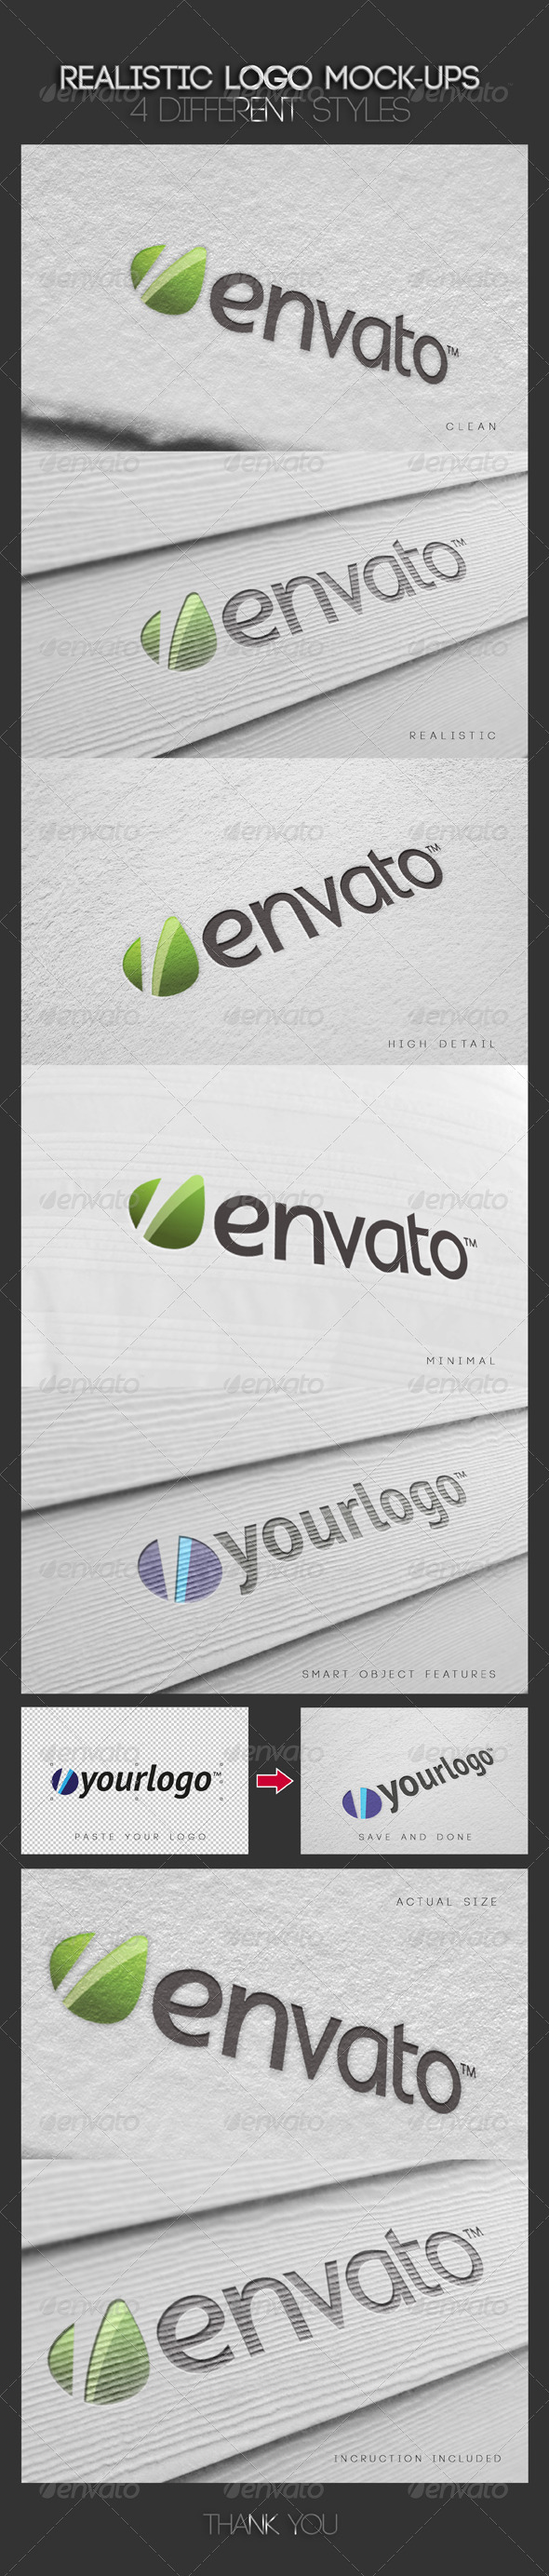 GraphicRiver Realistic Logo Mock-Ups Vol.1 4455967